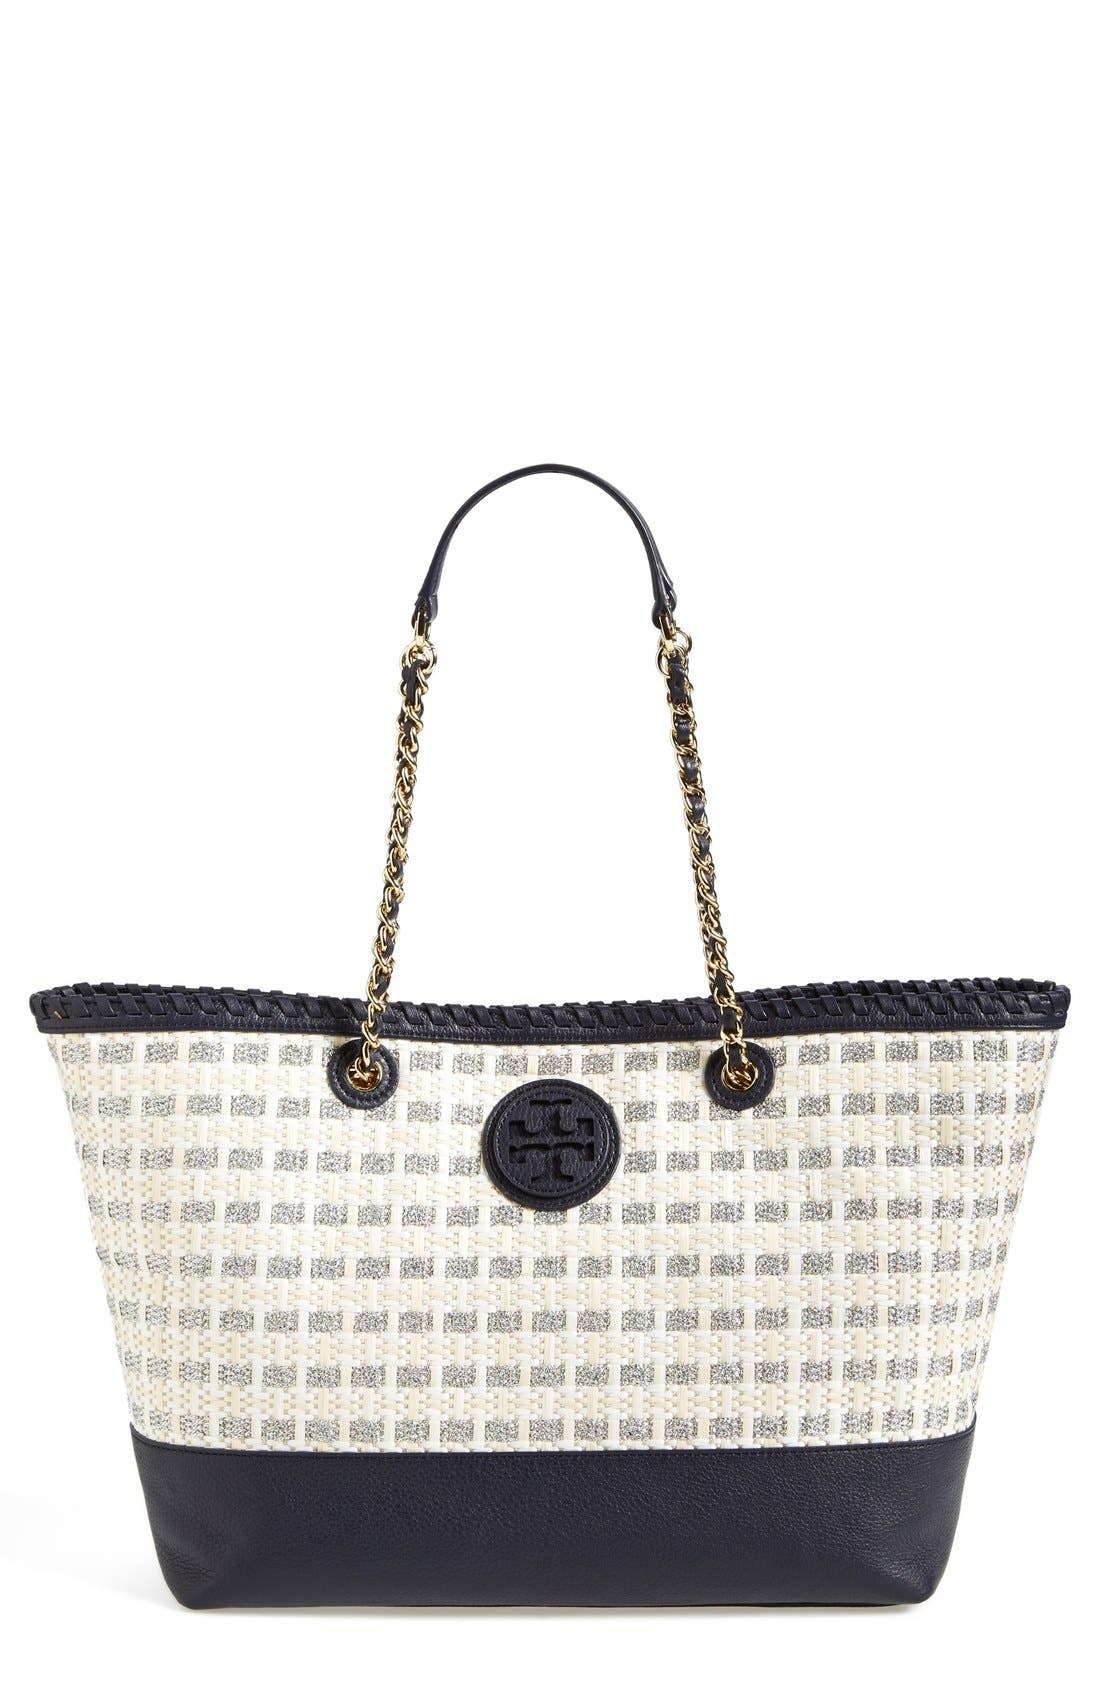 Main Image - Tory Burch 'Marion' Woven Straw Tote